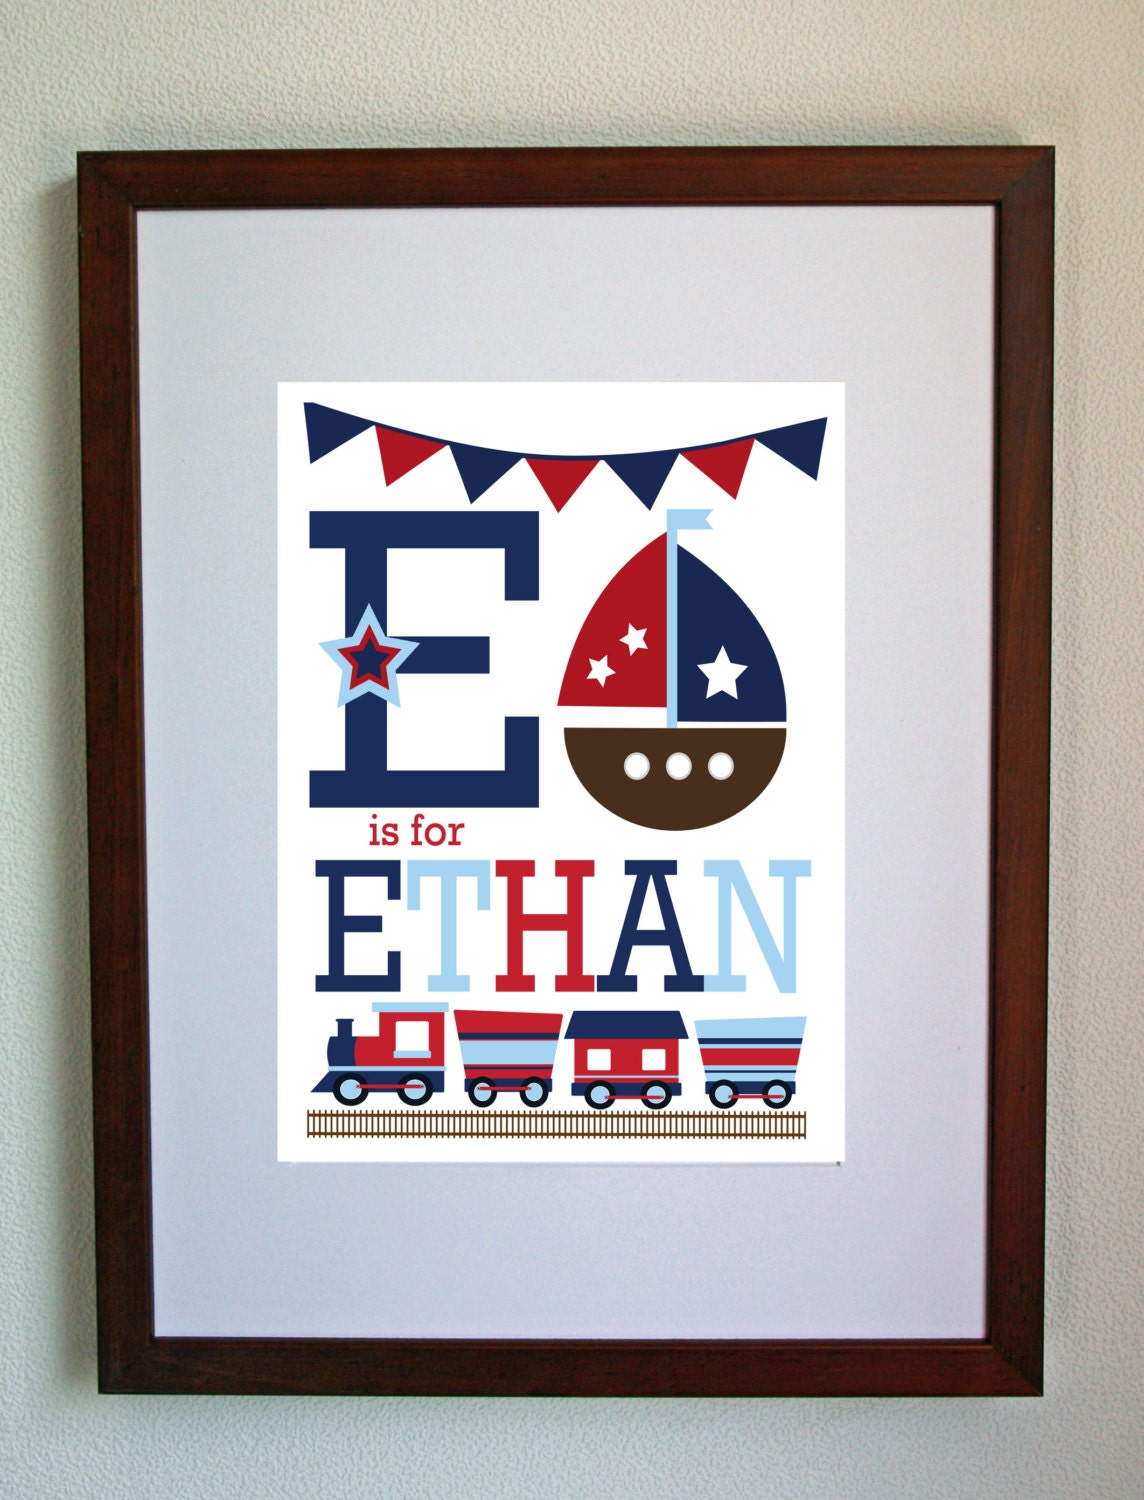 Custom Boy's Print - Personalised Unique Child's or Baby's Art Print  GREAT CHILDREN'S GIFT idea -  Unframed